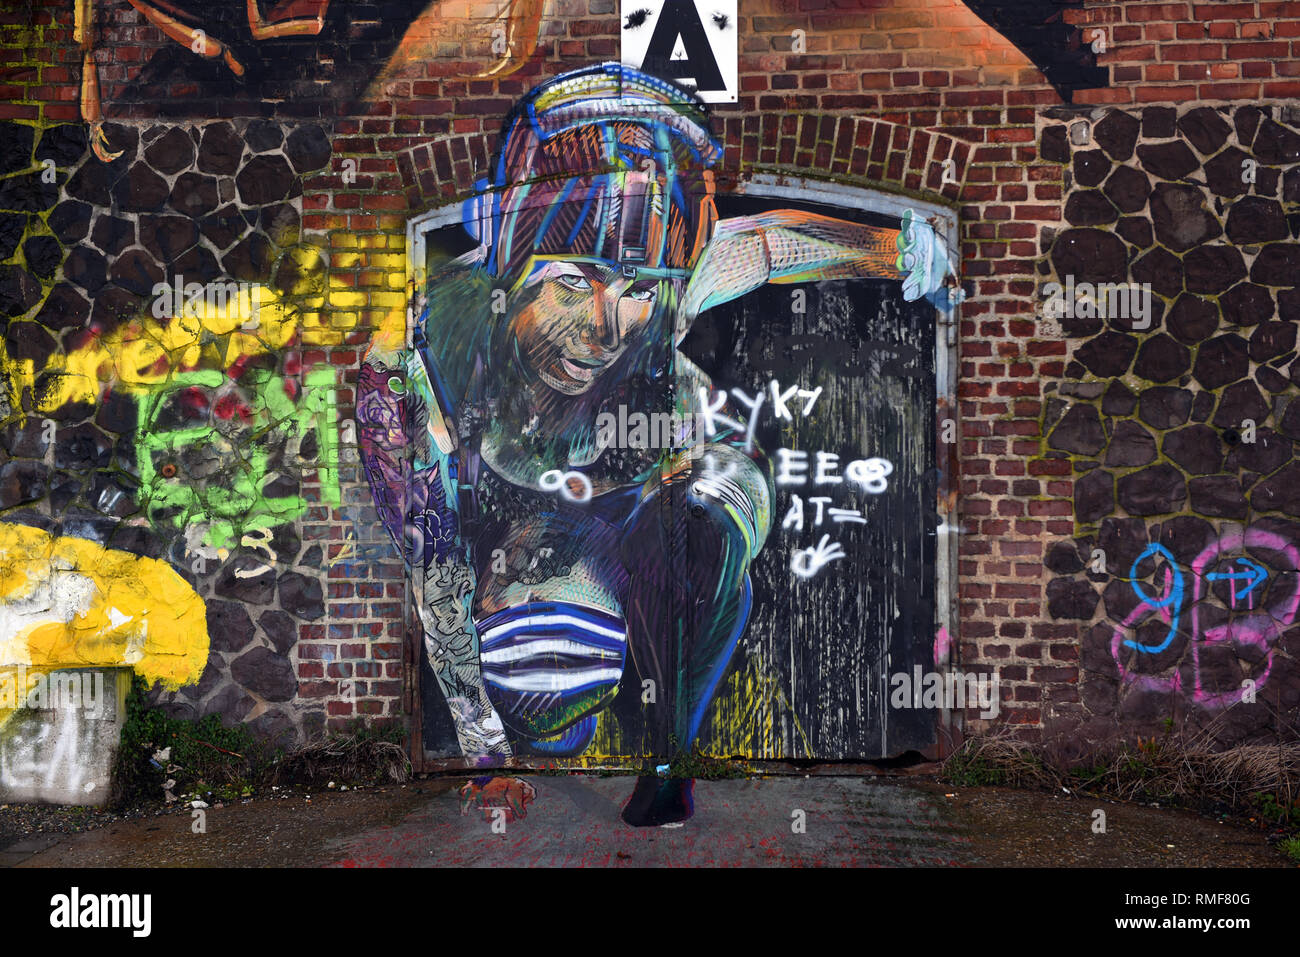 Krefeld, Germany. 11th Feb, 2019. 'Street Art Art' at a warehouse on the banks of the Rhine in the district of Uerdingen, which was created by the street art artist 'Adry del Rocio' as part of the event 'Rhine Side Gallery 2018' of the city of Krefeld. Credit: Horst Ossinger/dpa/Alamy Live News - Stock Image